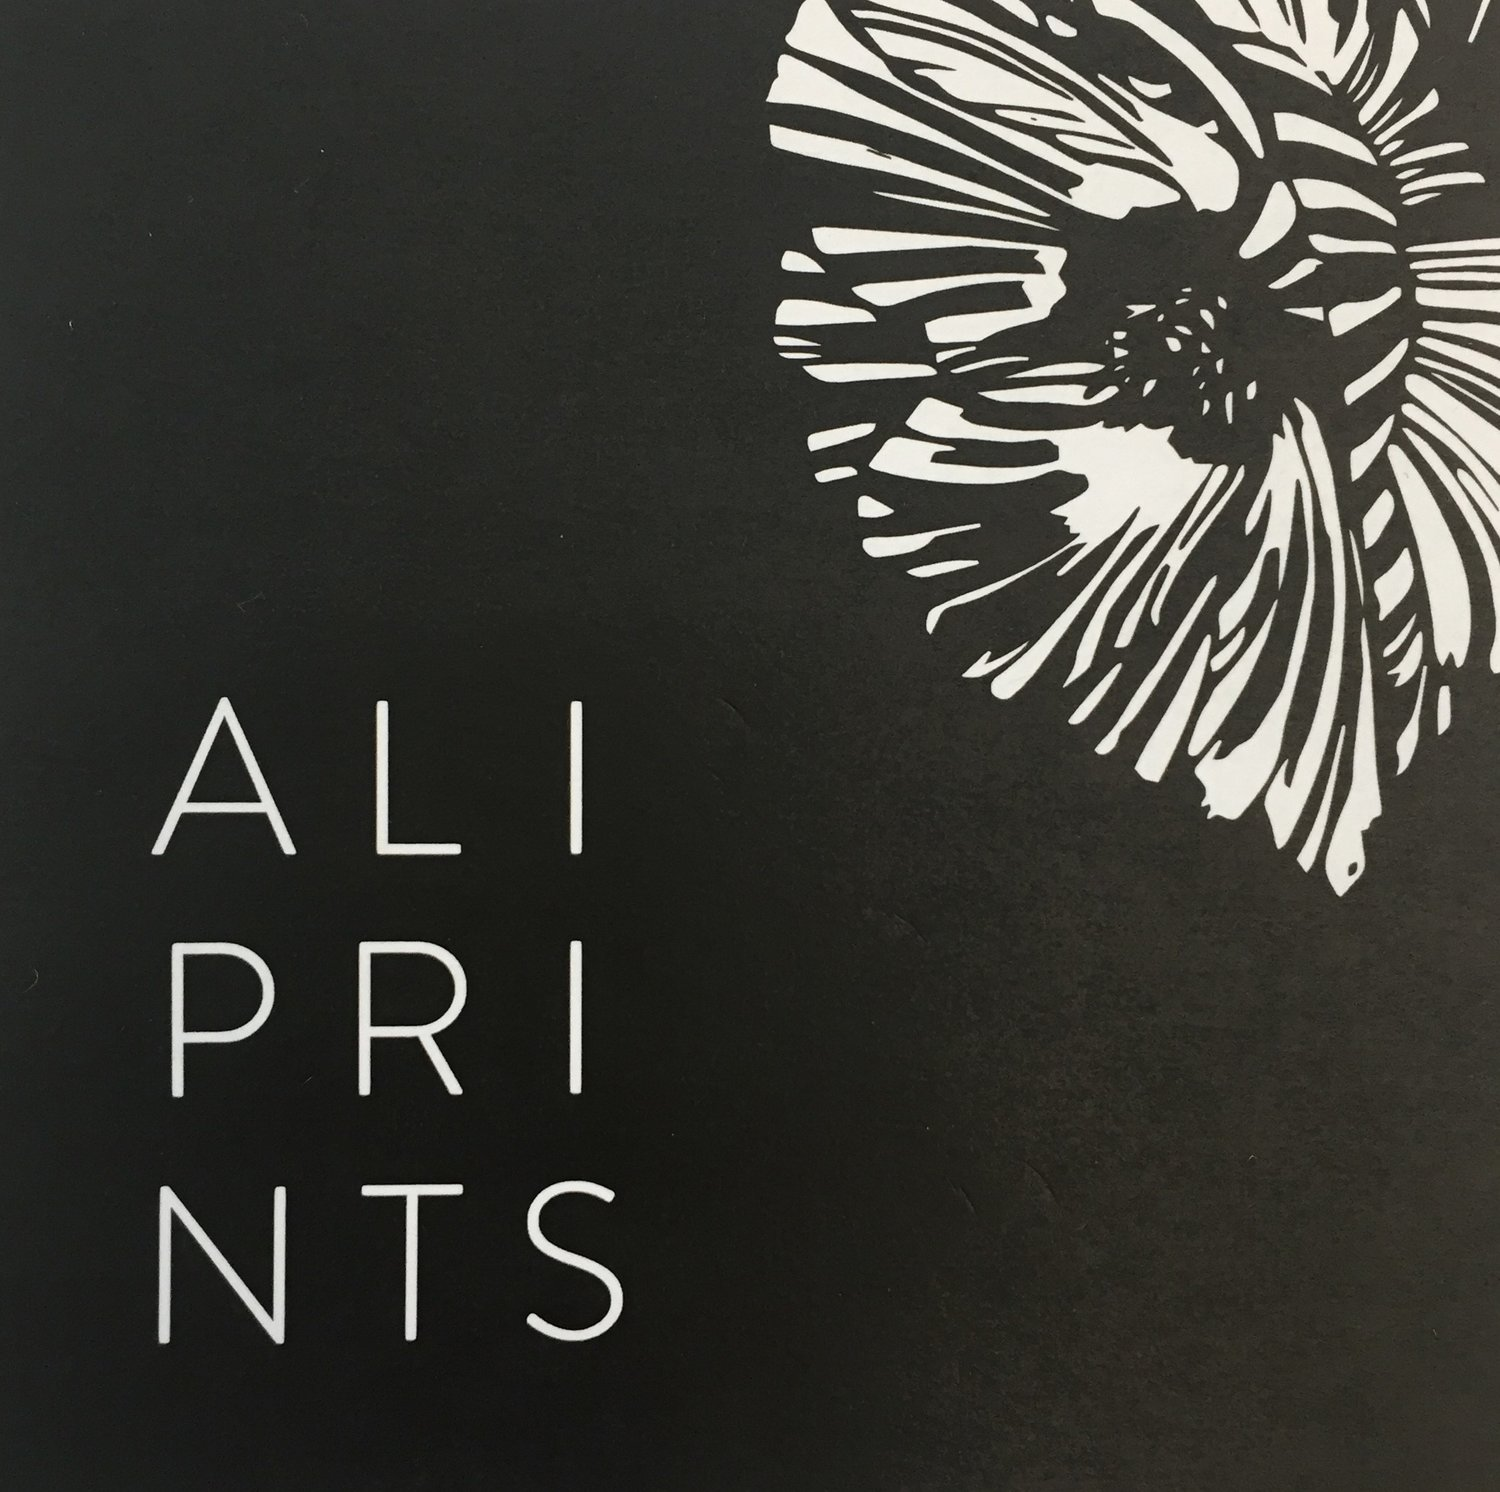 ALIPRINTS Design Studio